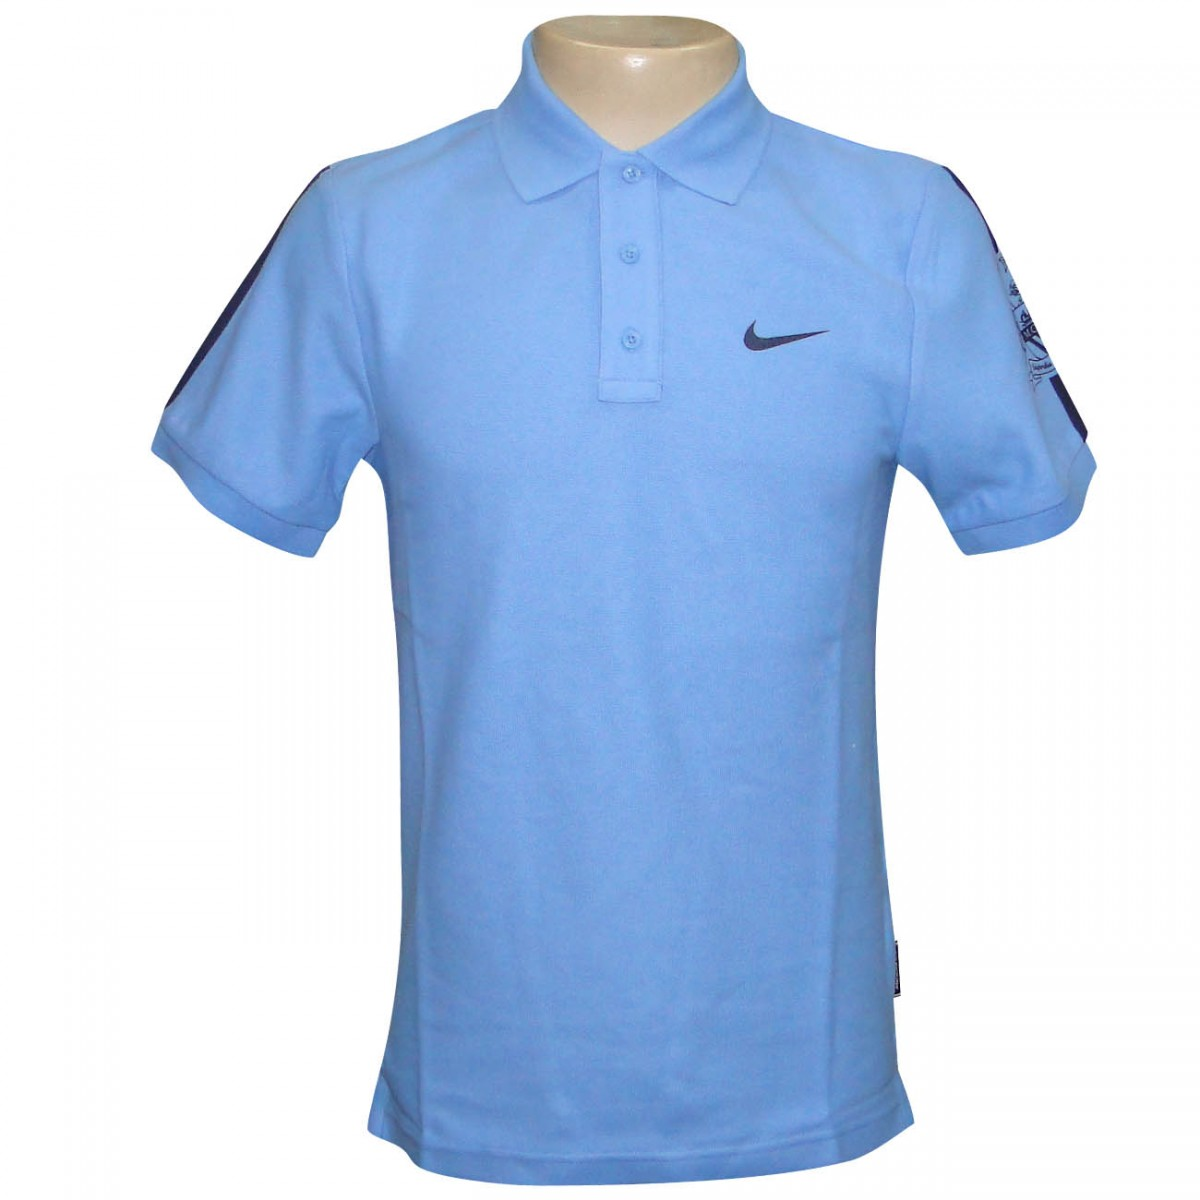 5dac9097 where can i buy manchester city fc grand slam mens polo 14896 a488f;  ireland polo nike manchester city 624341. zoom 63b49 50aaf